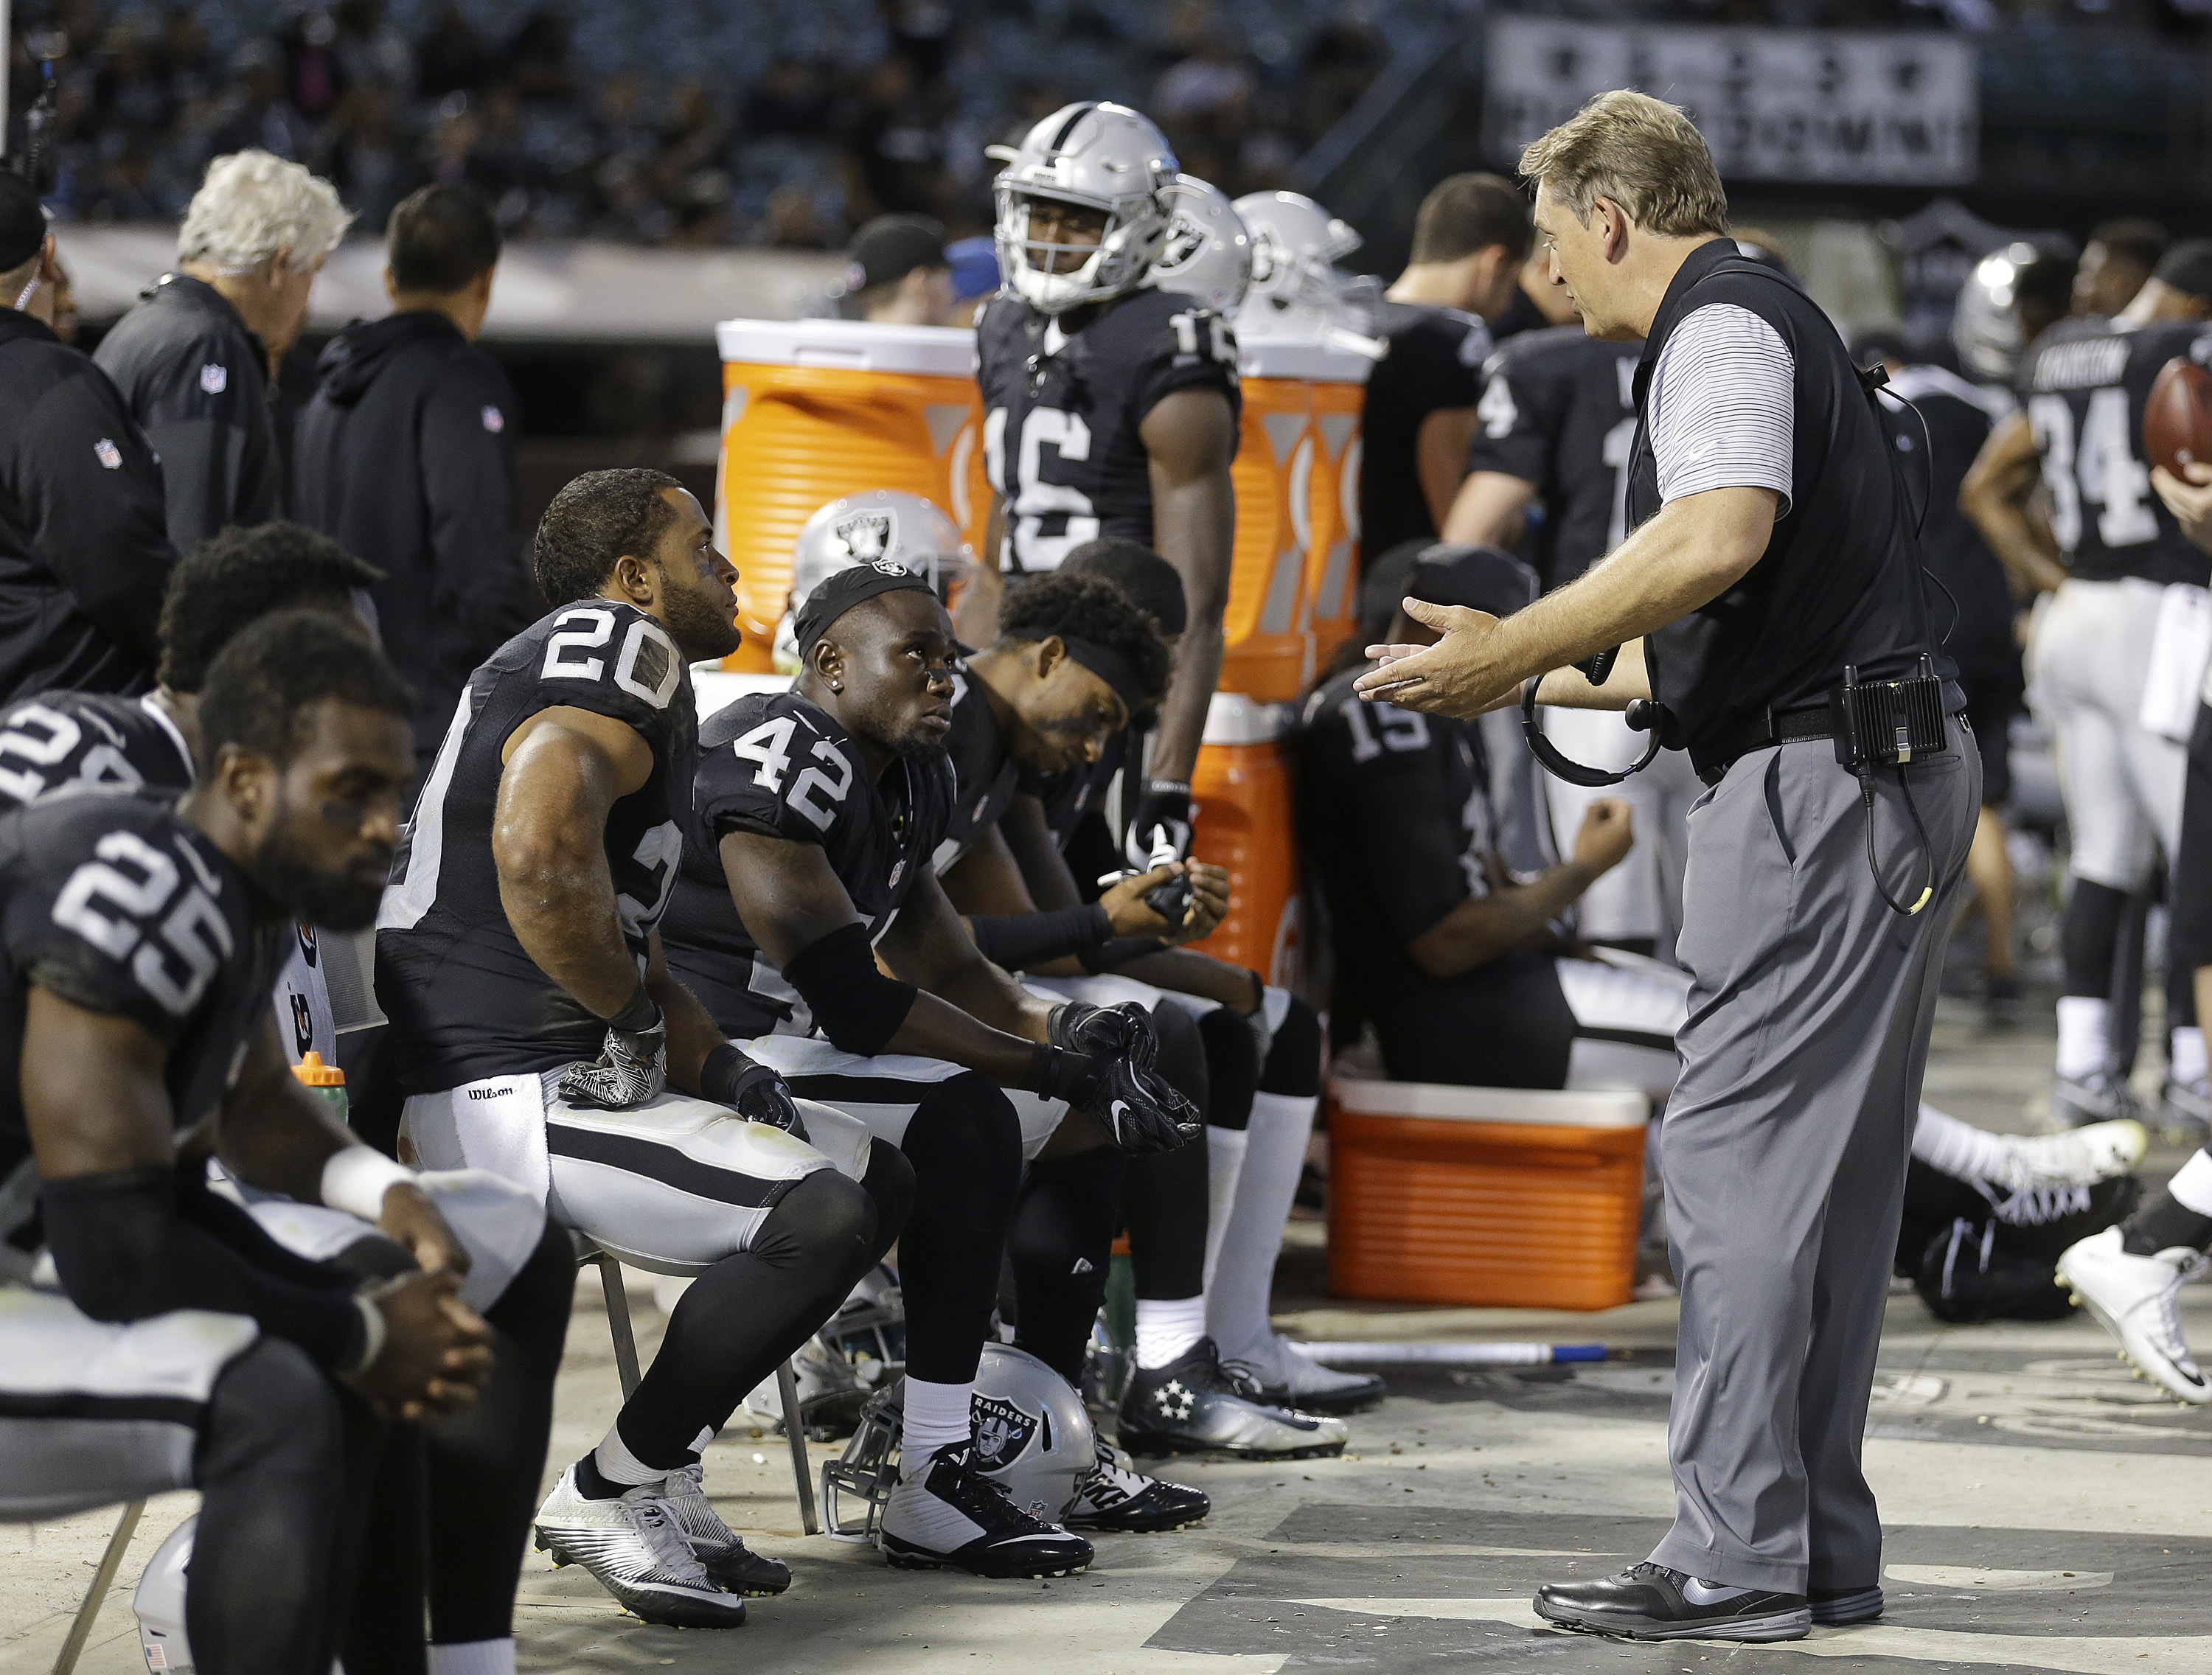 Oakland Raiders head coach Jack Del Rio gestures toward safety Karl Joseph (42) and strong safety Nate Allen (20) sitting on the bench during the second half of an NFL preseason football game against the Tennessee Titans Saturday, Aug. 27, 2016, in Oaklan